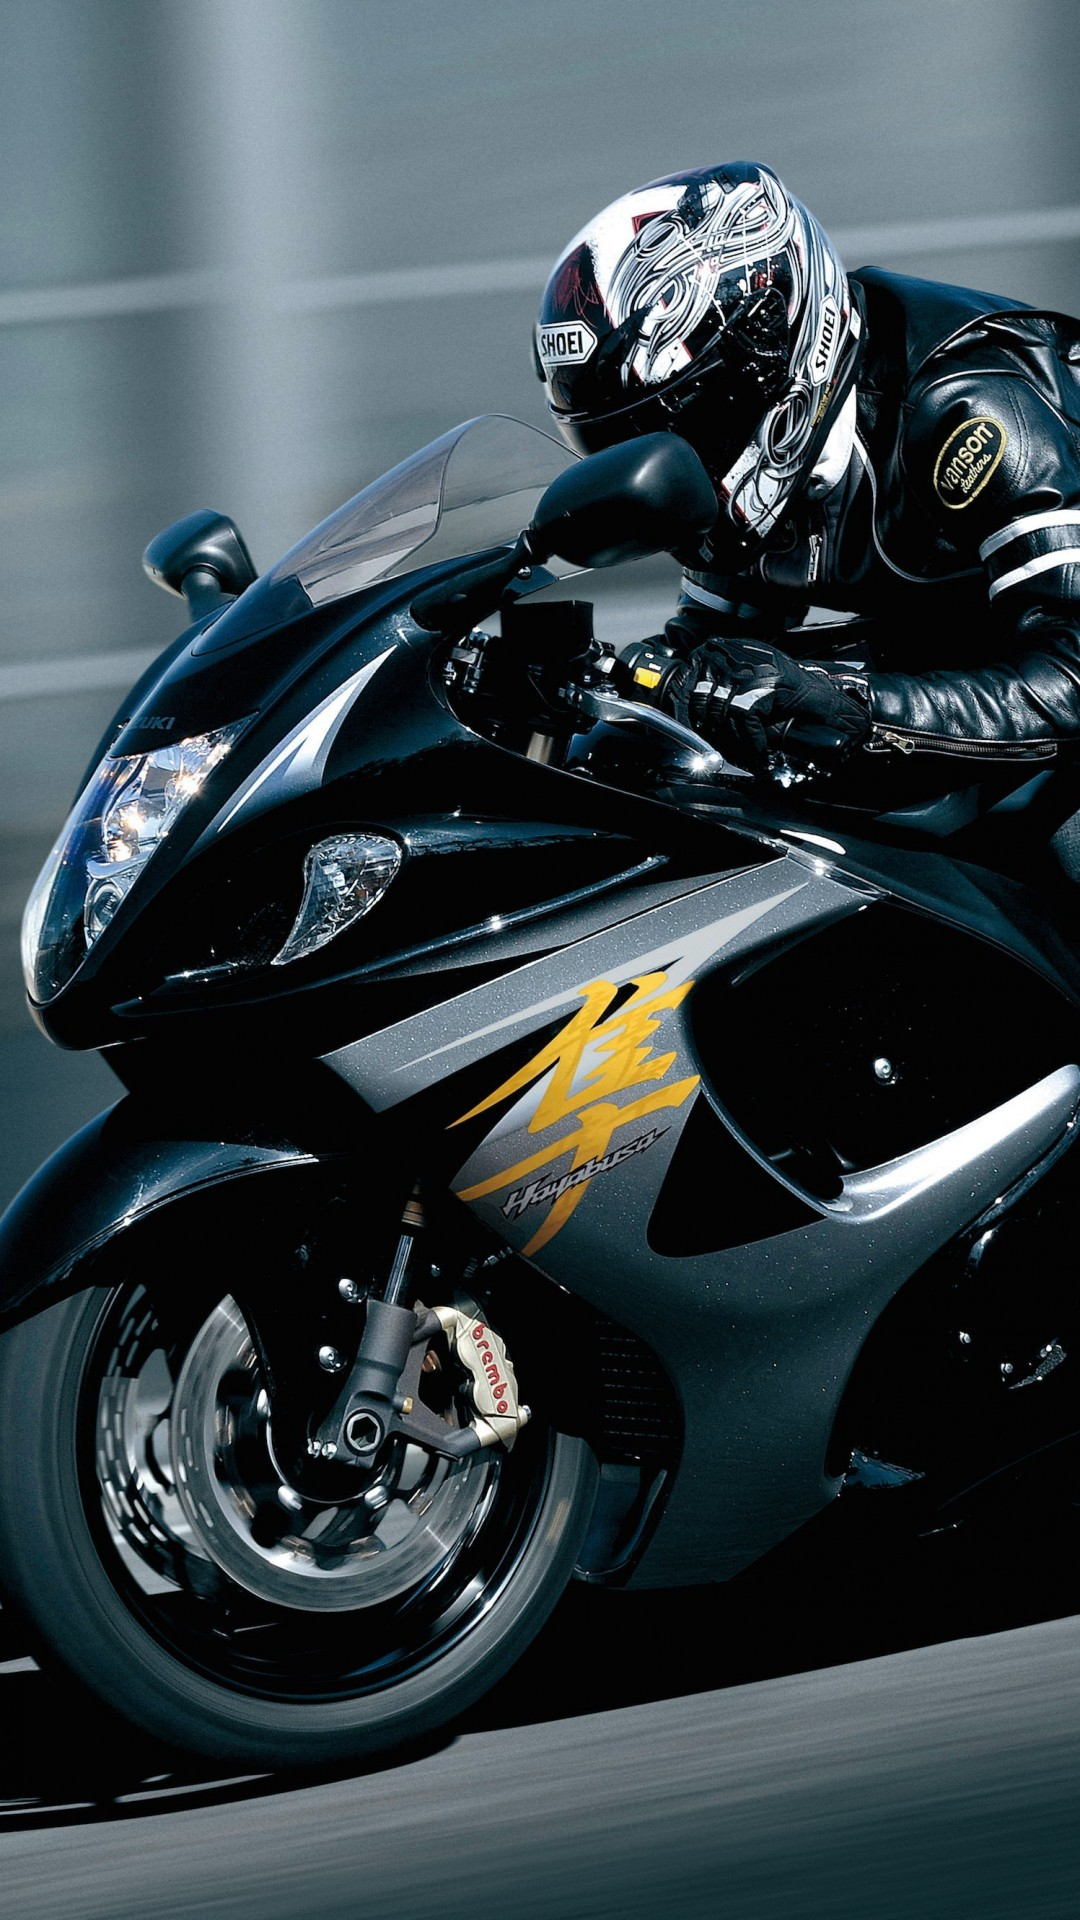 Suzuki Hayabusa GSX 1300R Wallpaper for Motorola Moto X